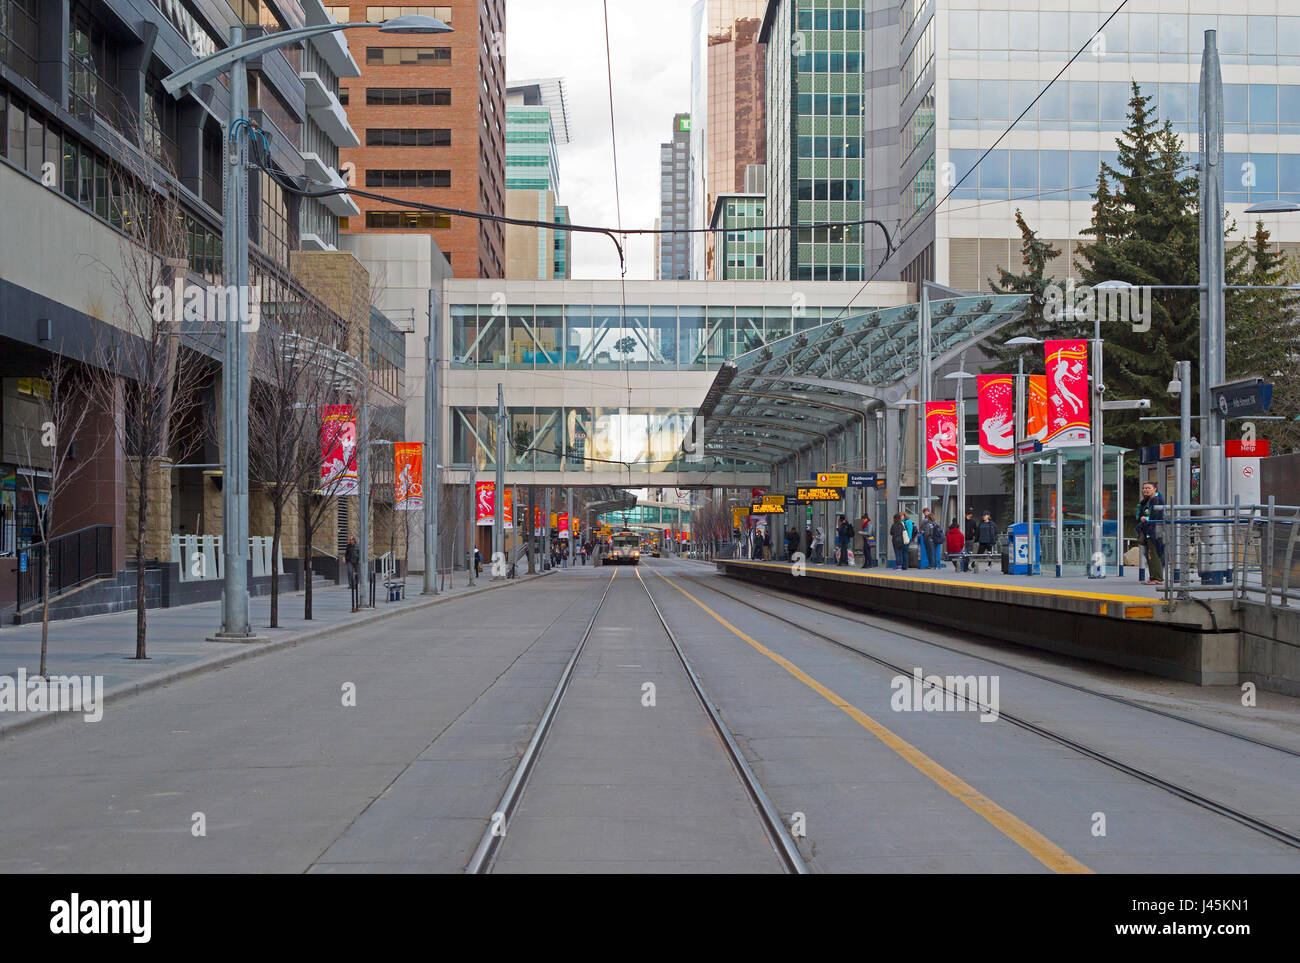 C train station on 7th avenue with +15 and +30 walkways, part of an extensive elevated pedestrian skywalk system - Stock Image